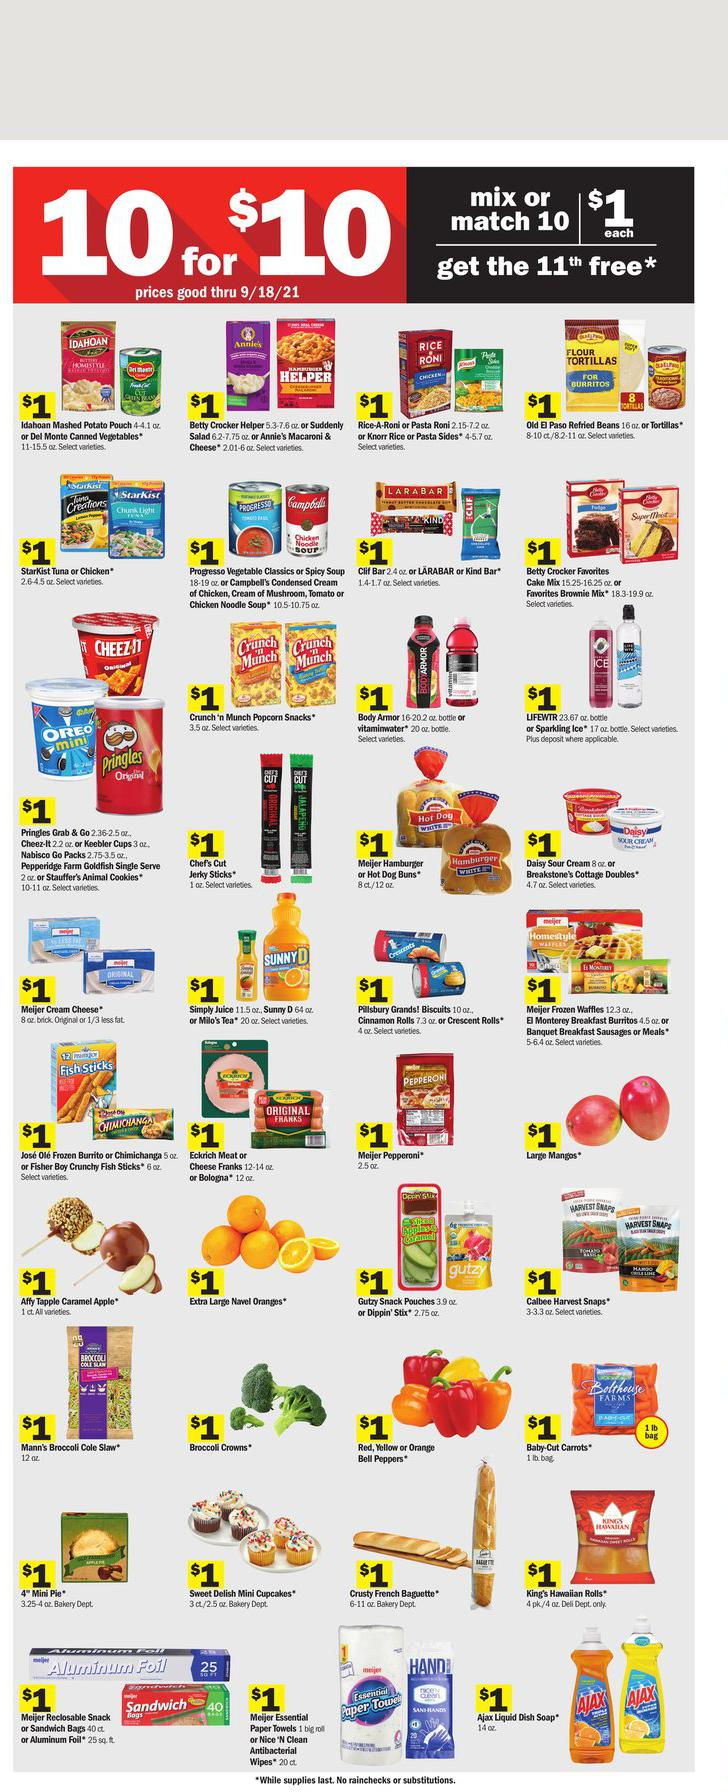 12.09.2021 Meijer ad 2. page